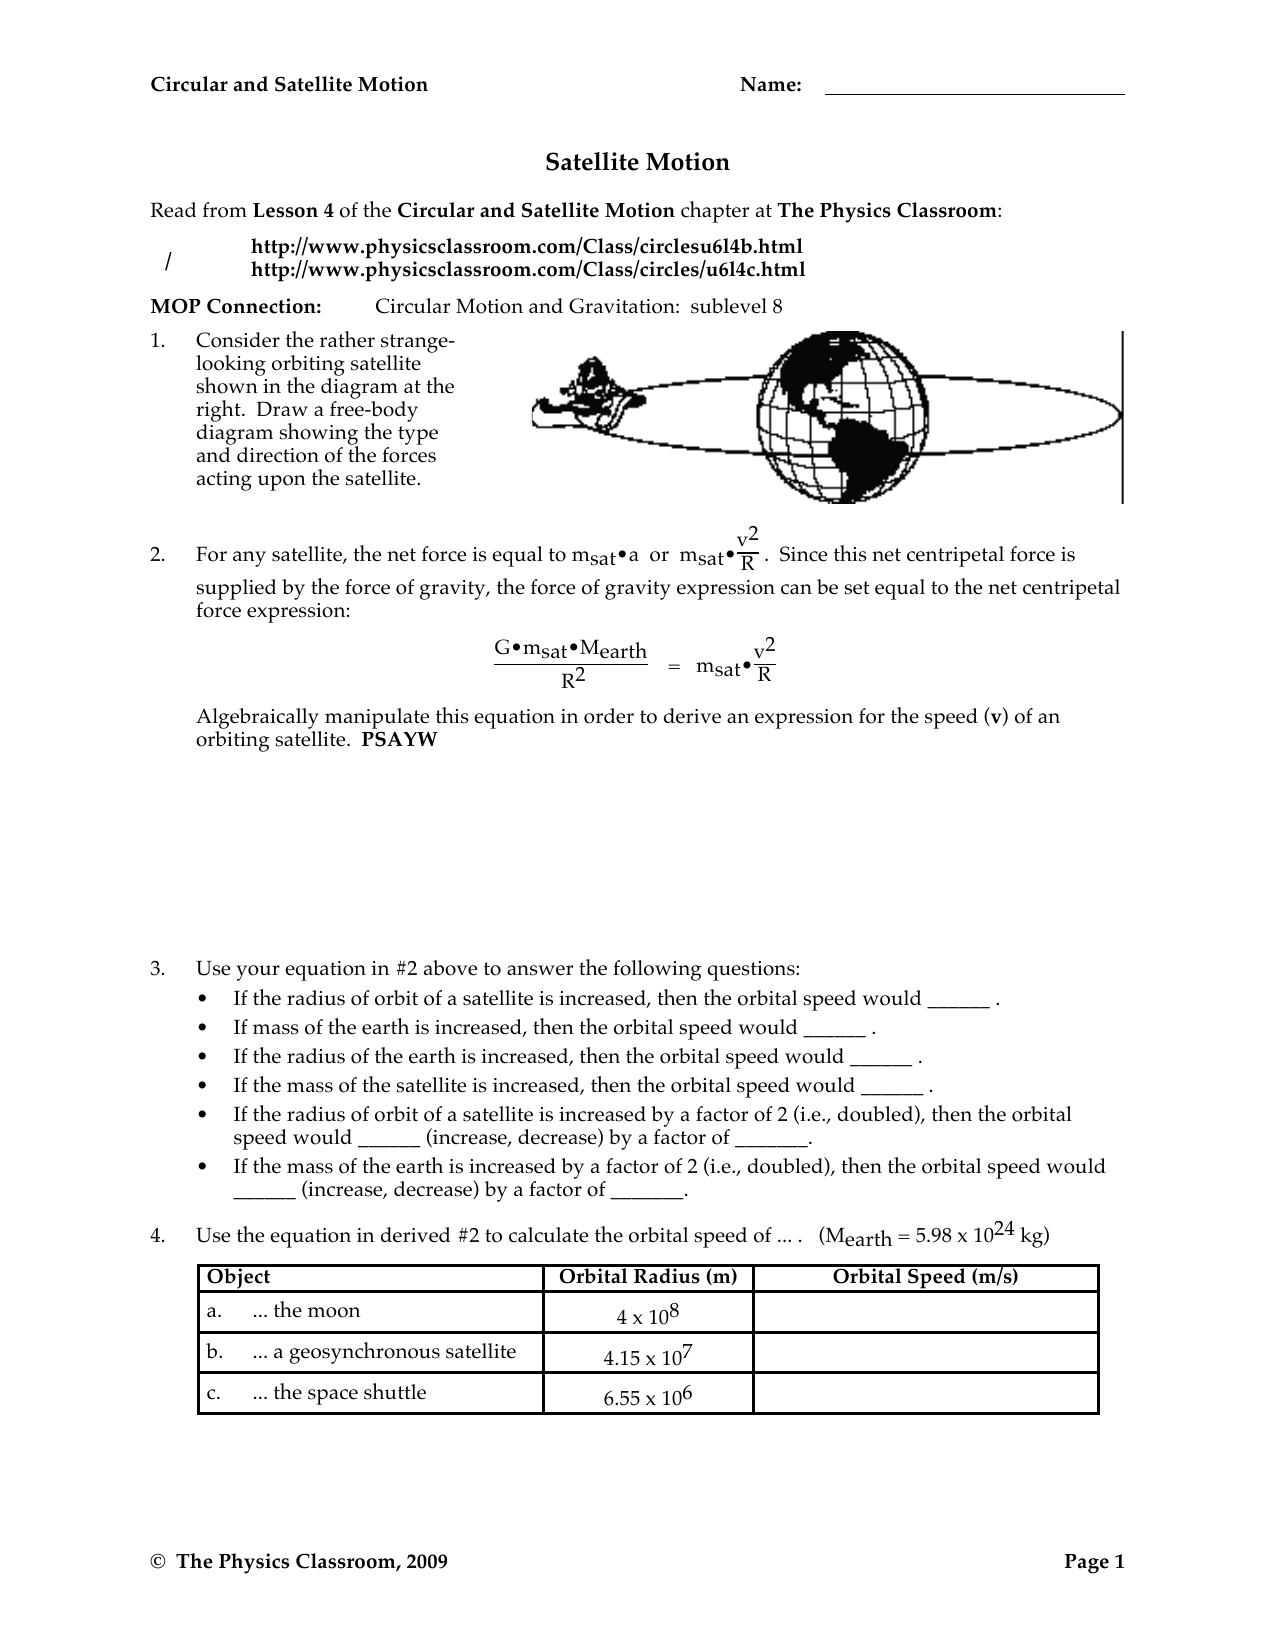 Circular And Satellite Motion Worksheet Answers